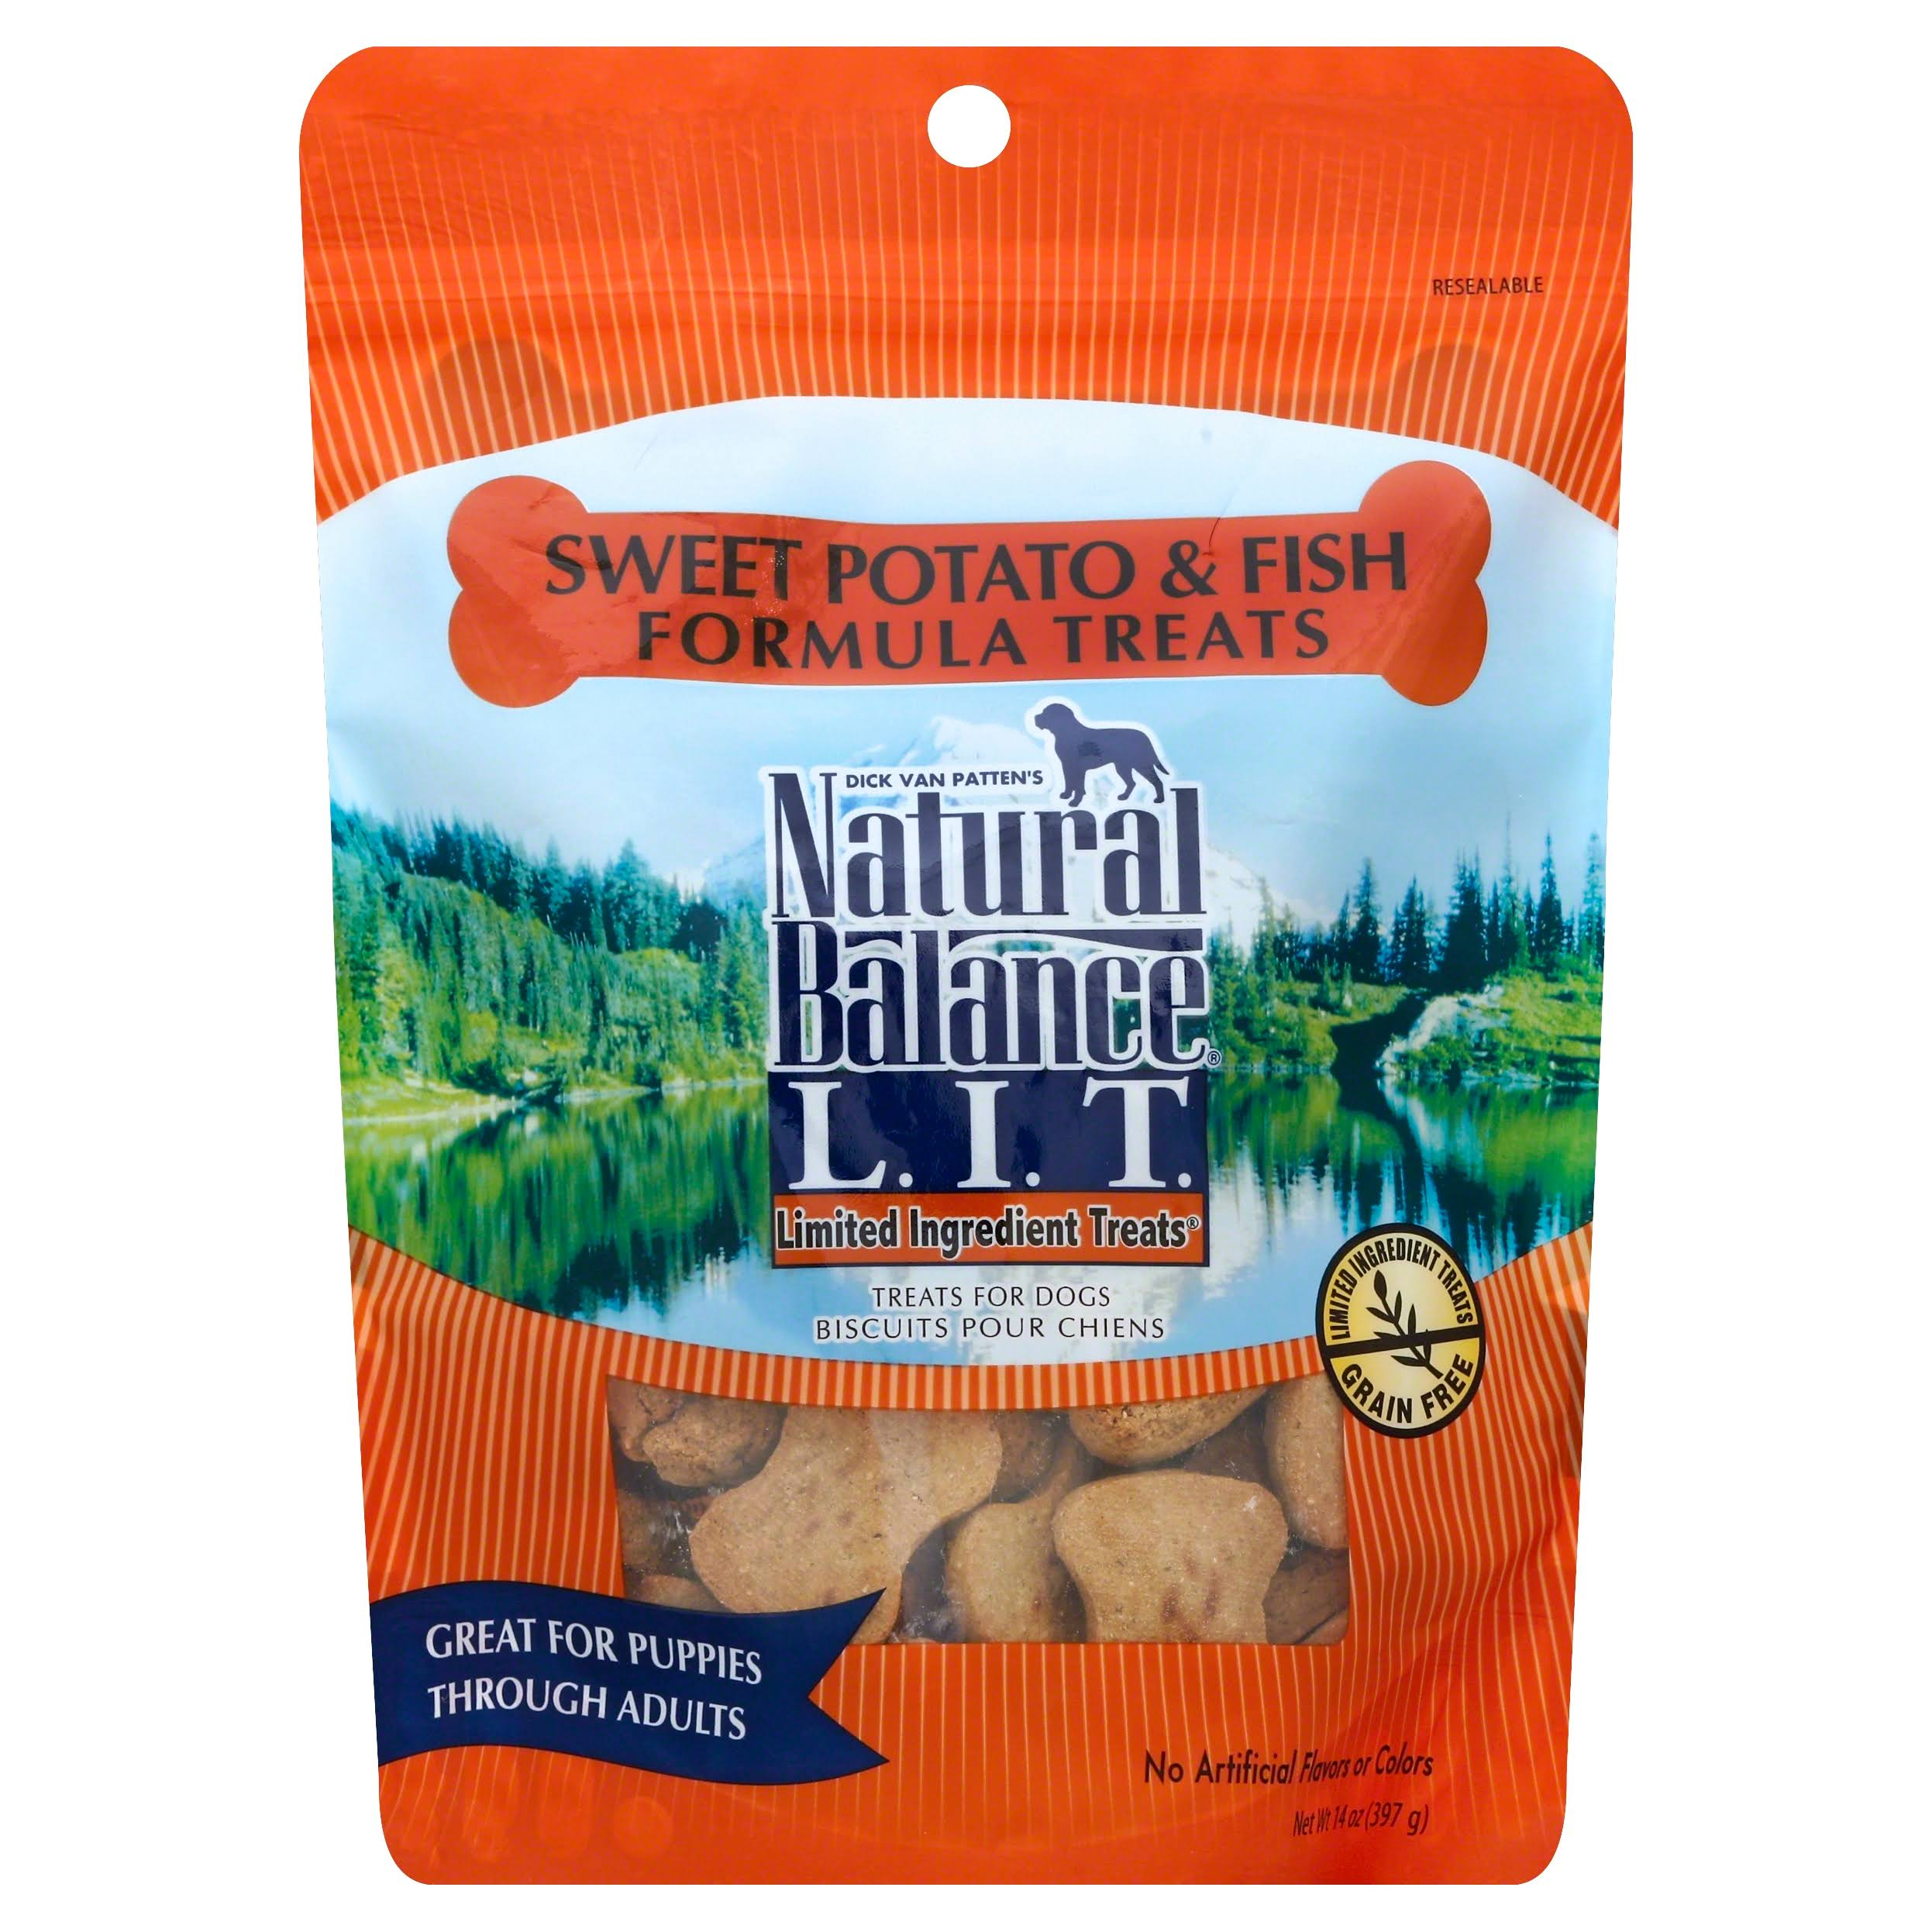 Natural Balance Formula Dog Treats - Sweet Potato & Fish, 14oz